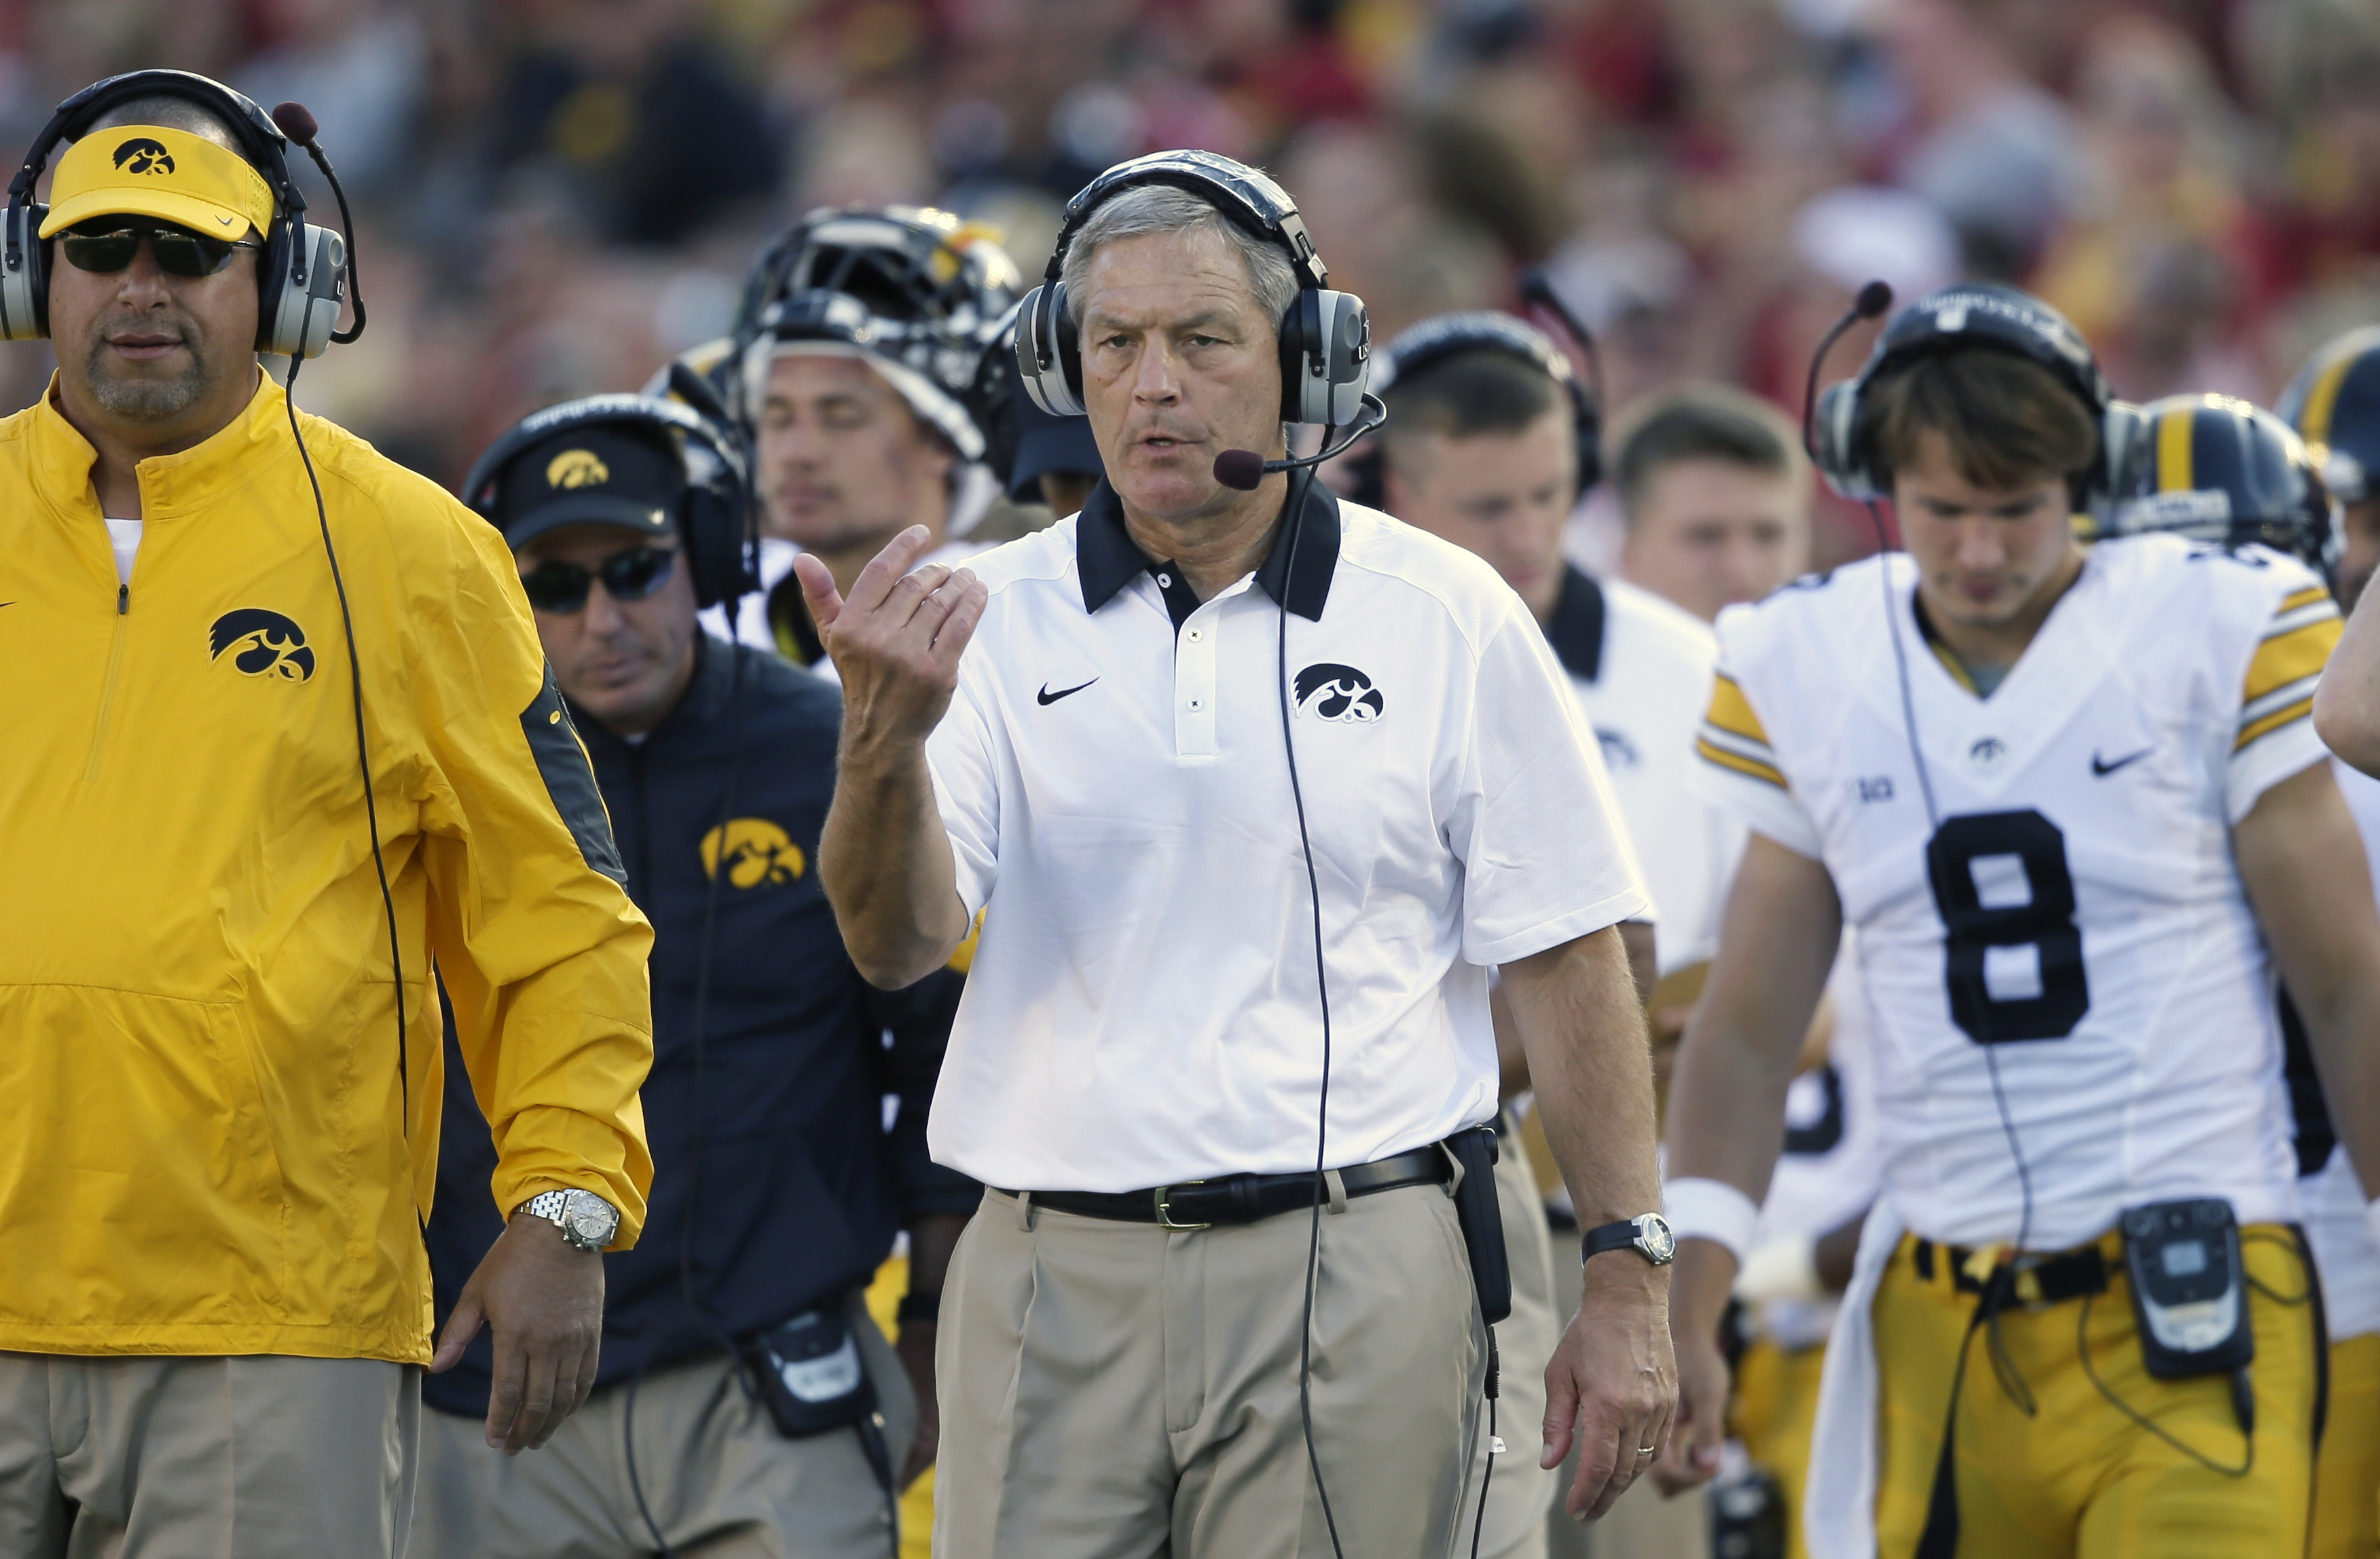 FILE - In this Sept. 12, 2015, file photo, Iowa head coach Kirk Ferentz directs his team during the first half of an NCAA college football game against Iowa State, in Ames, Iowa. Ferentz knew before this season that only a major turnaround would appease a